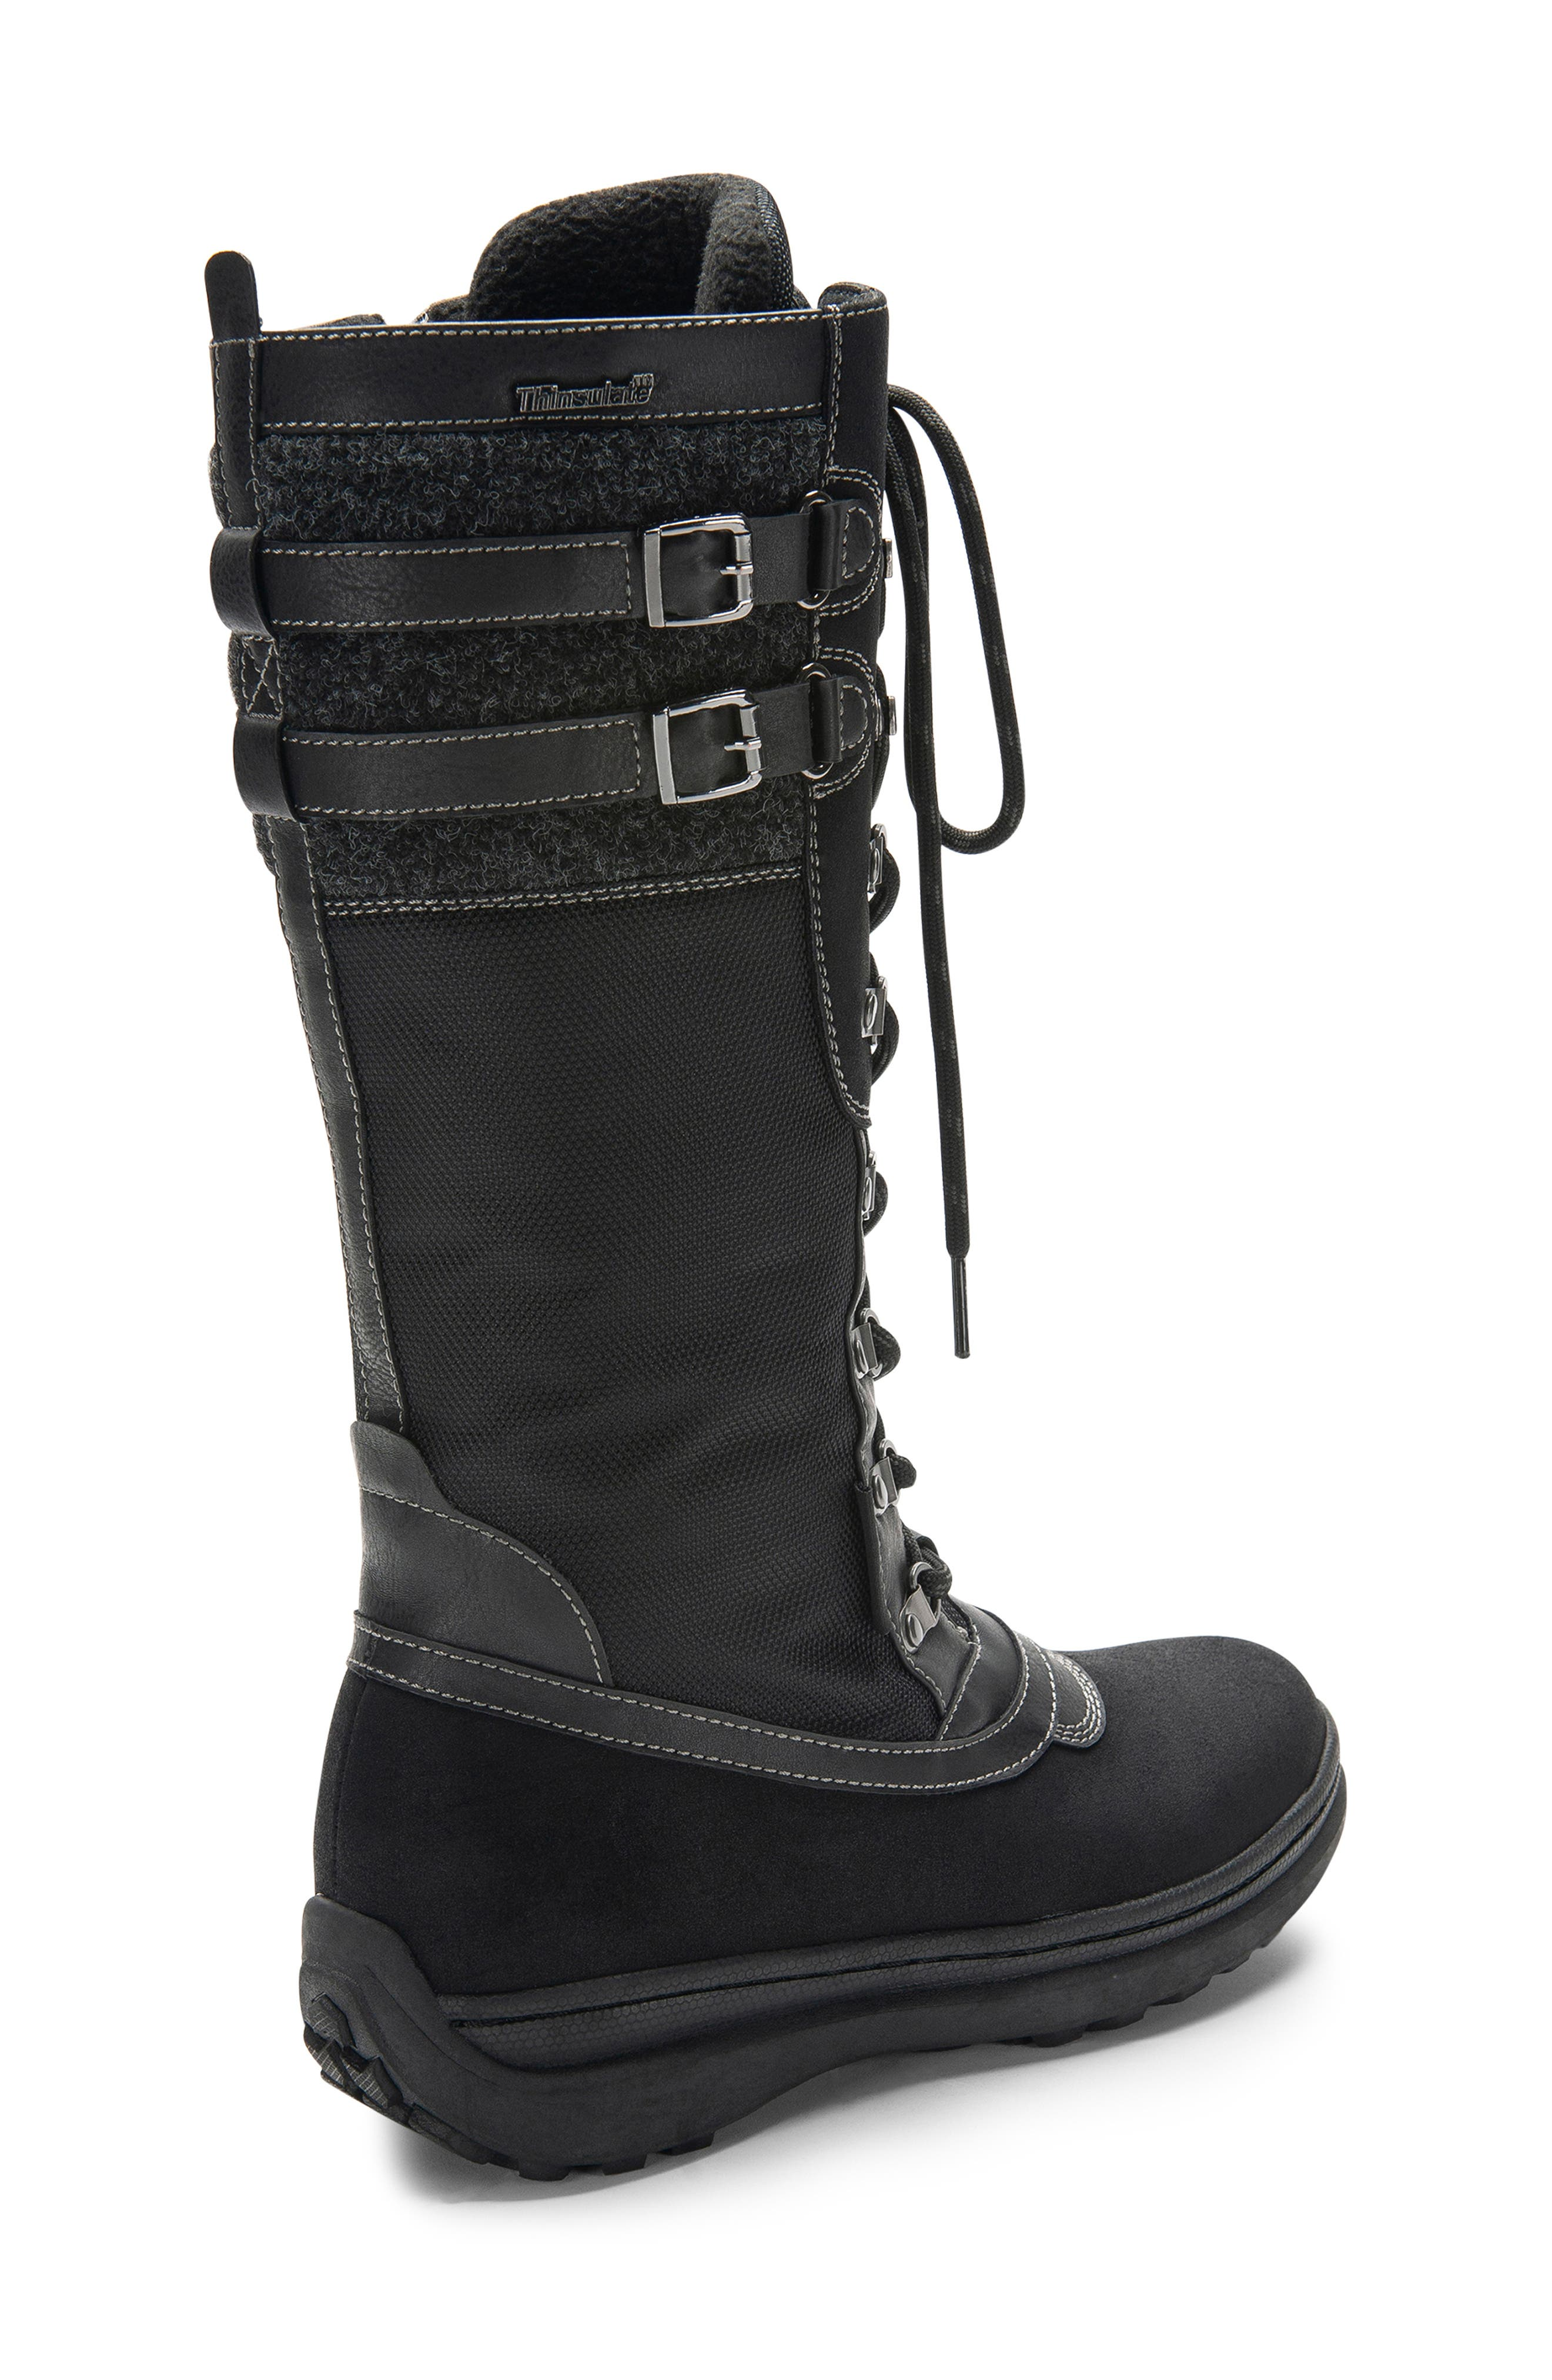 India Waterproof Snow Boot,                             Alternate thumbnail 8, color,                             BLACK LEATHER